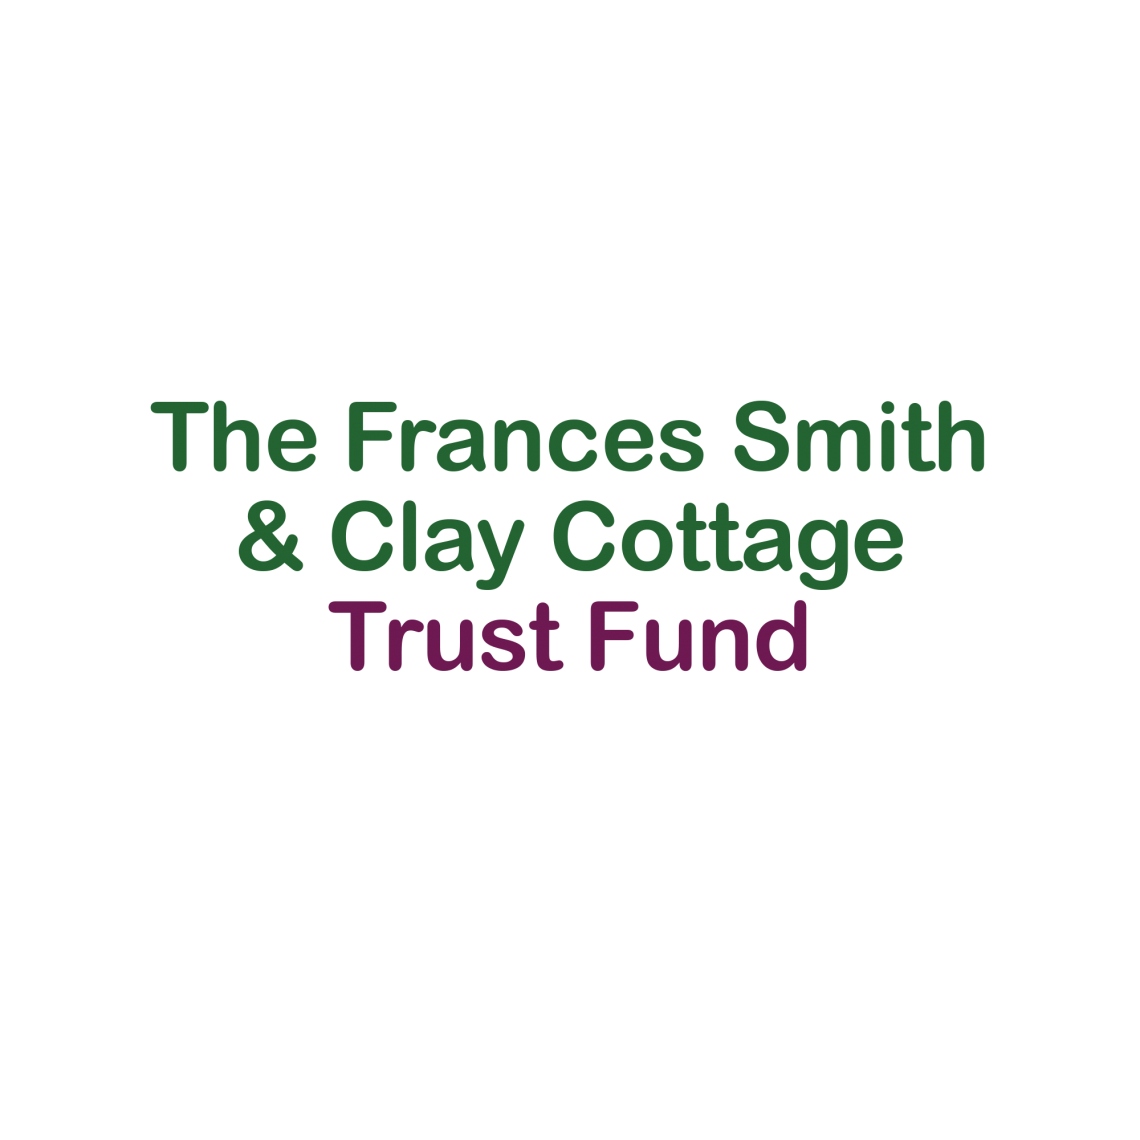 Frances Smith Clay Cottage Trust Fund logo